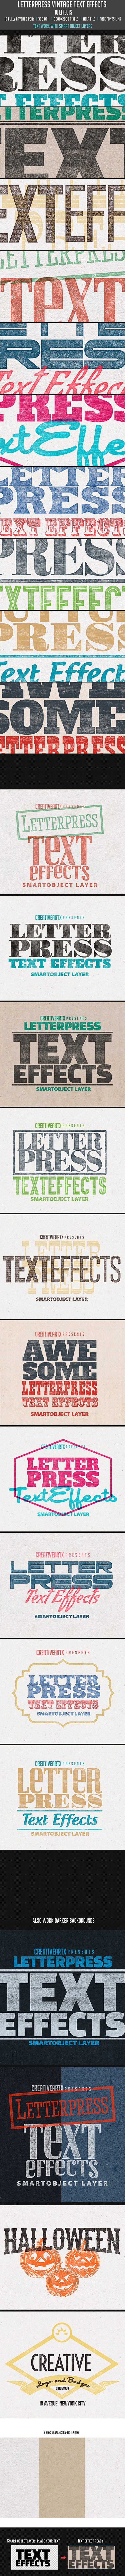 GraphicRiver Letterpress Vintage Text Effects 9749142